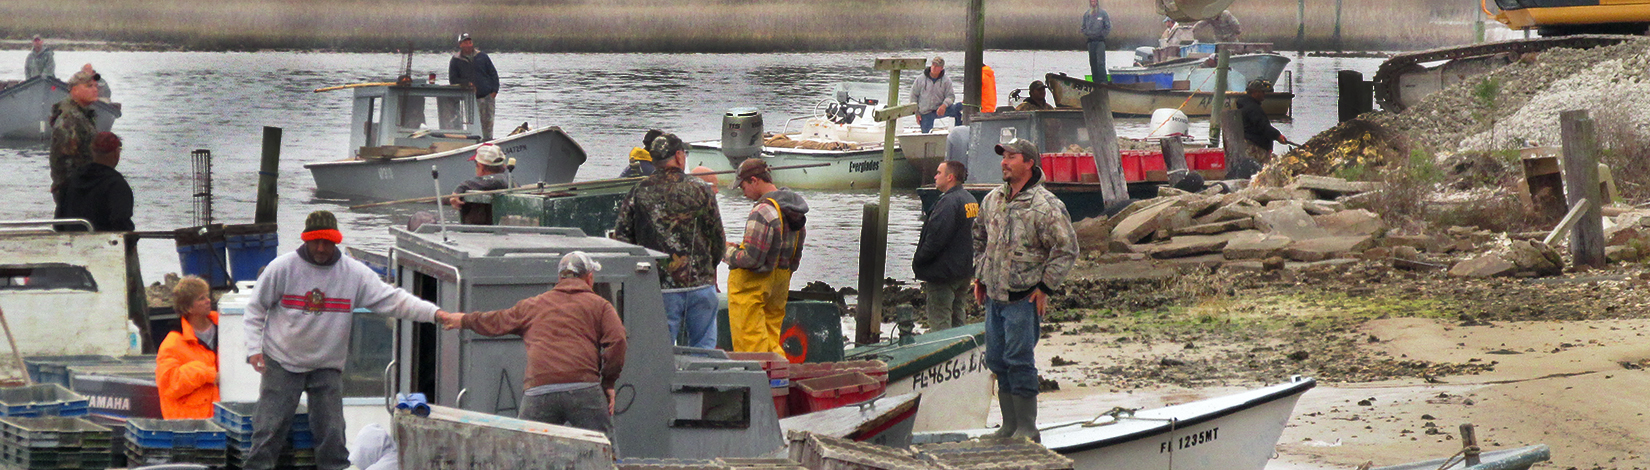 Oystermen in the bay oyster restoration